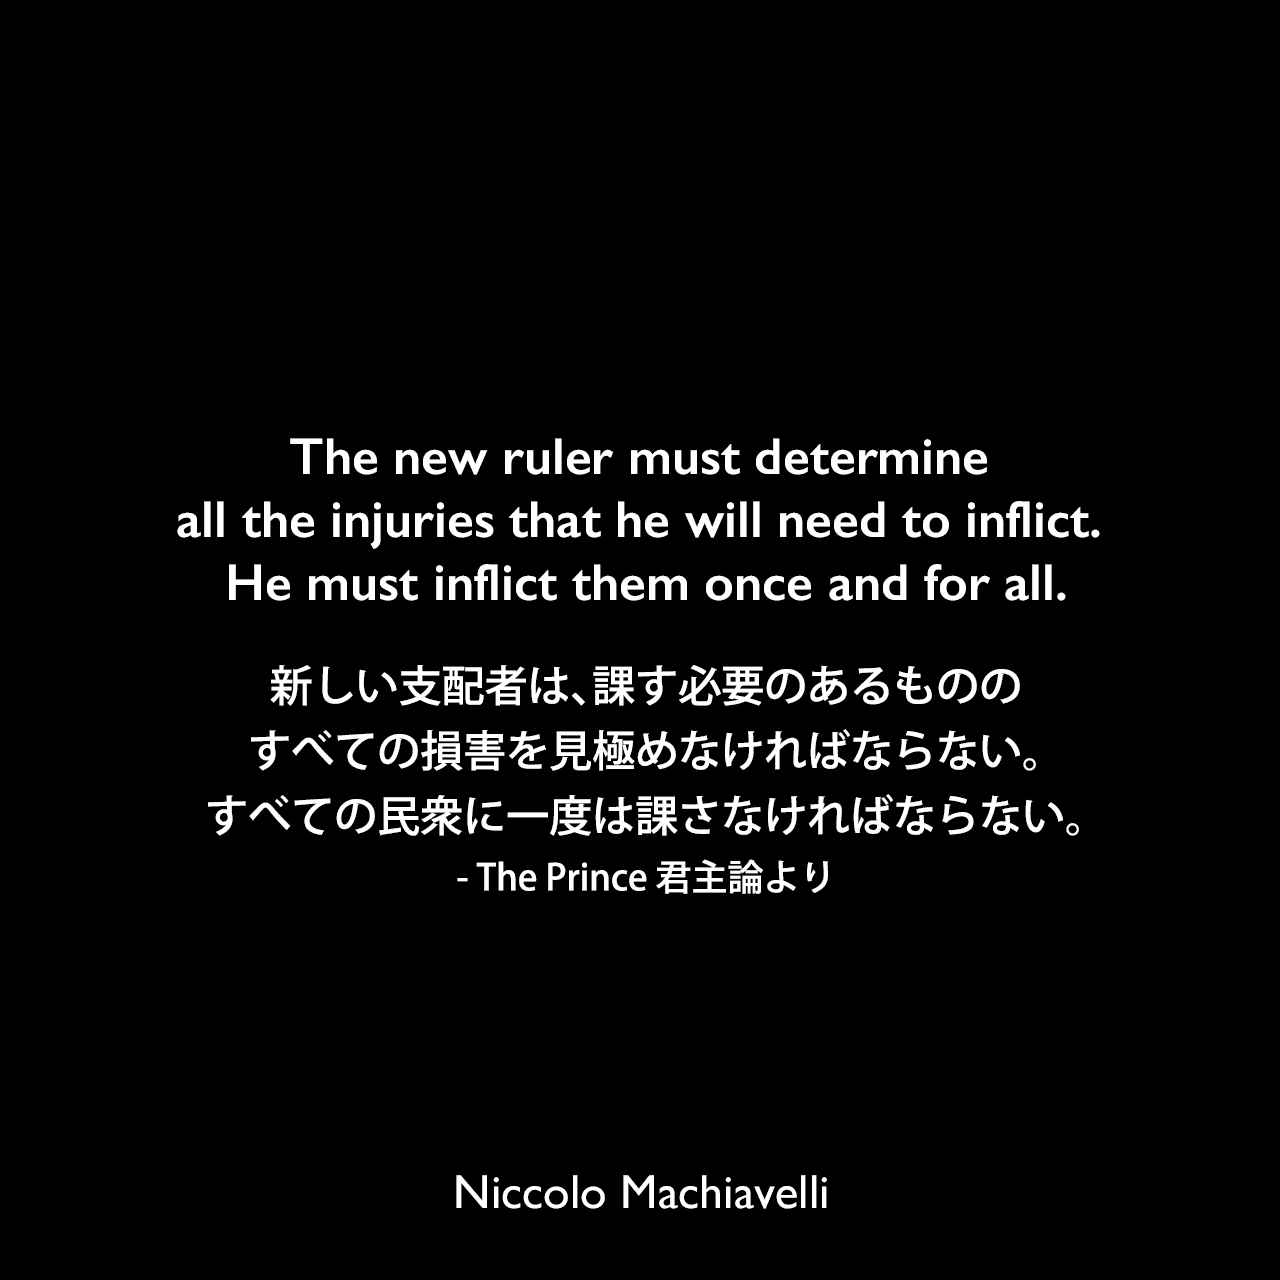 The new ruler must determine all the injuries that he will need to inflict. He must inflict them once and for all.新しい支配者は、課す必要のあるもののすべての損害を見極めなければならない。すべての民衆に一度は課さなければならない。- The Prince 君主論よりNiccolo Machiavelli